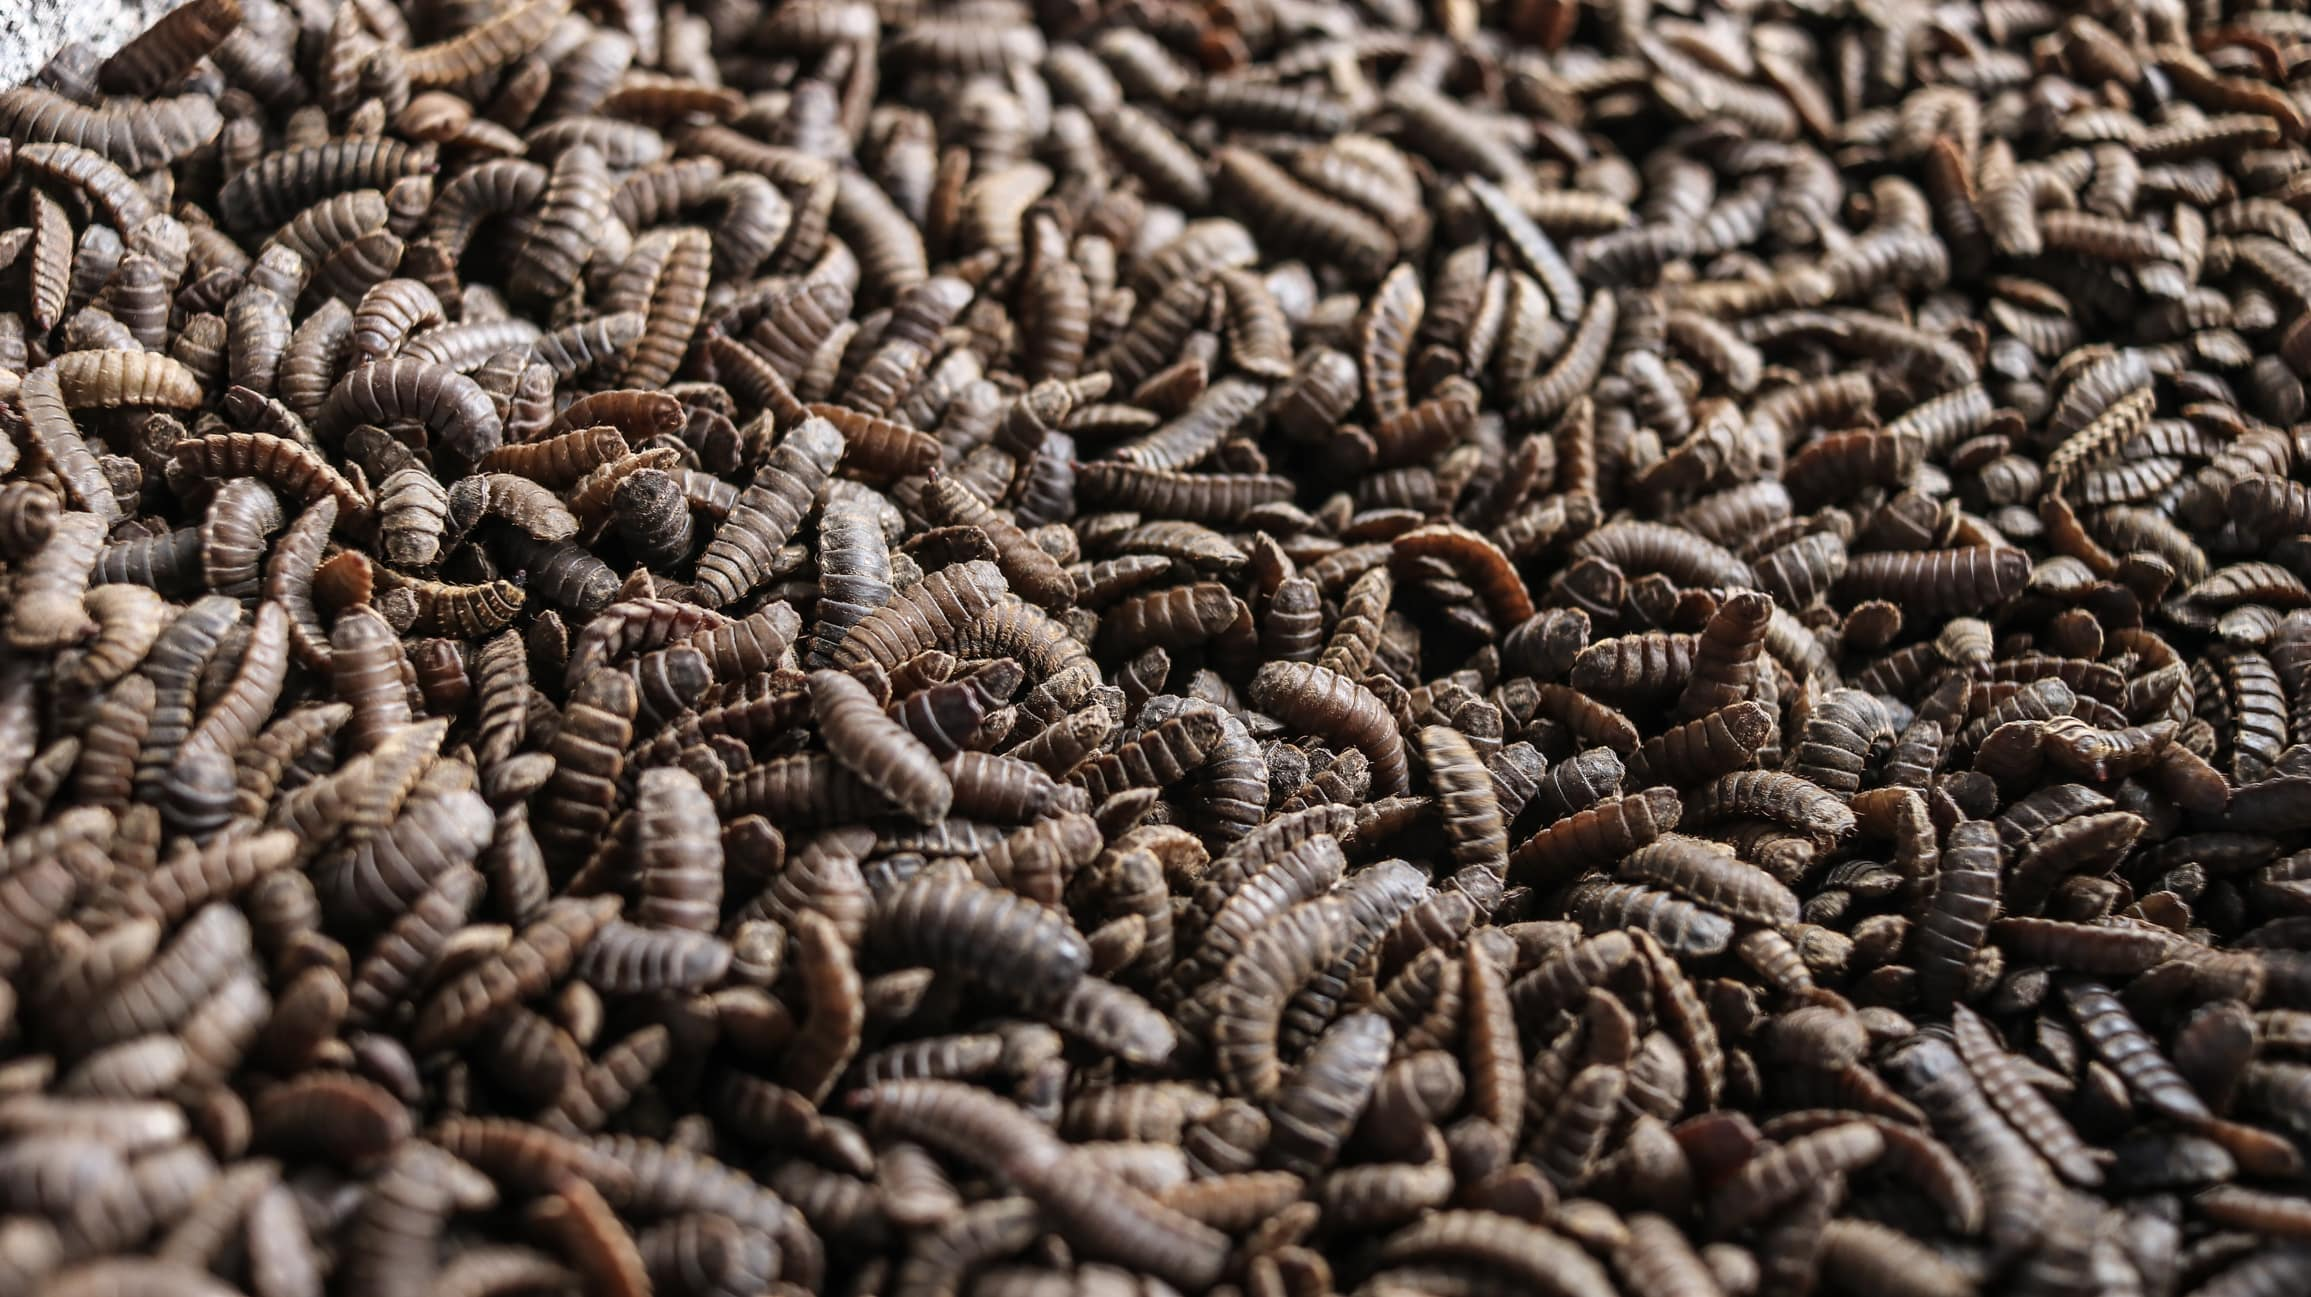 Improving Food Waste Processing with Black Soldier Fly (BSF) Larvae